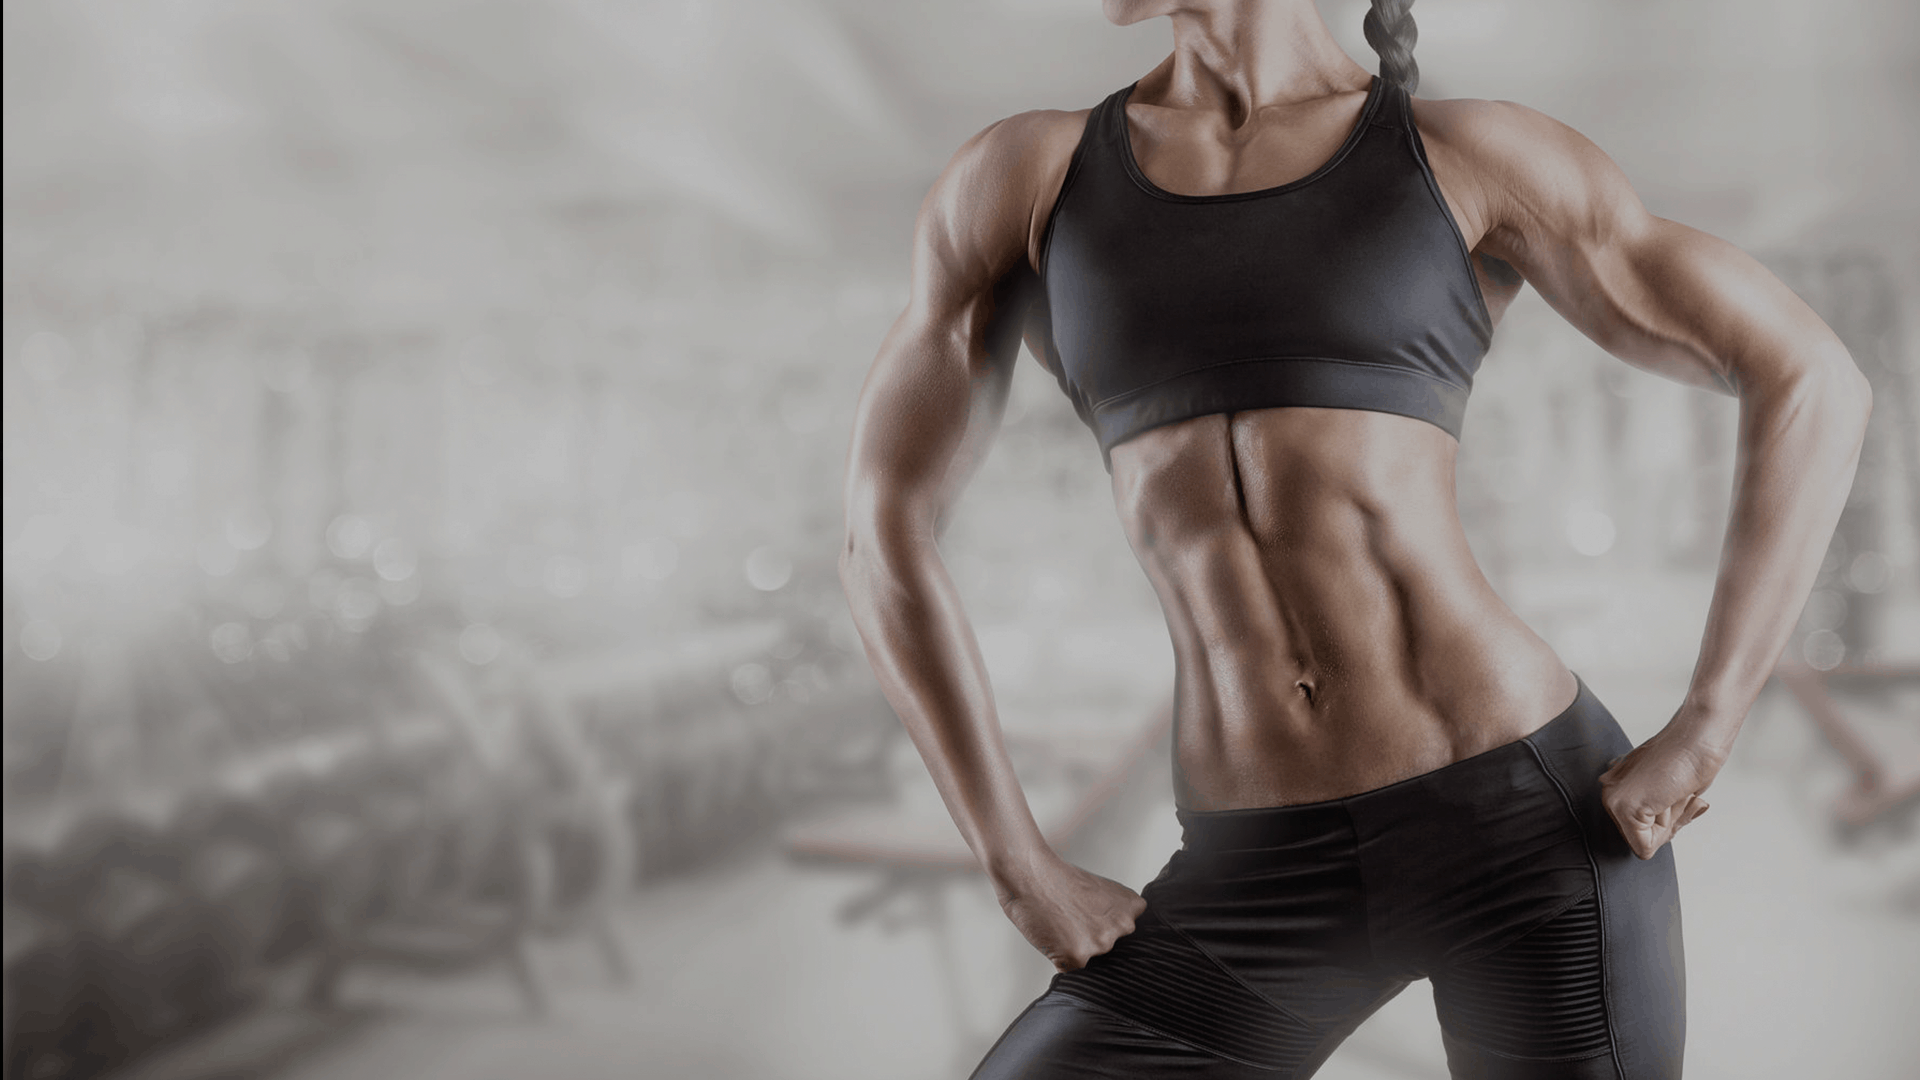 3 Tricks For FAST FAT Loss + New Workout